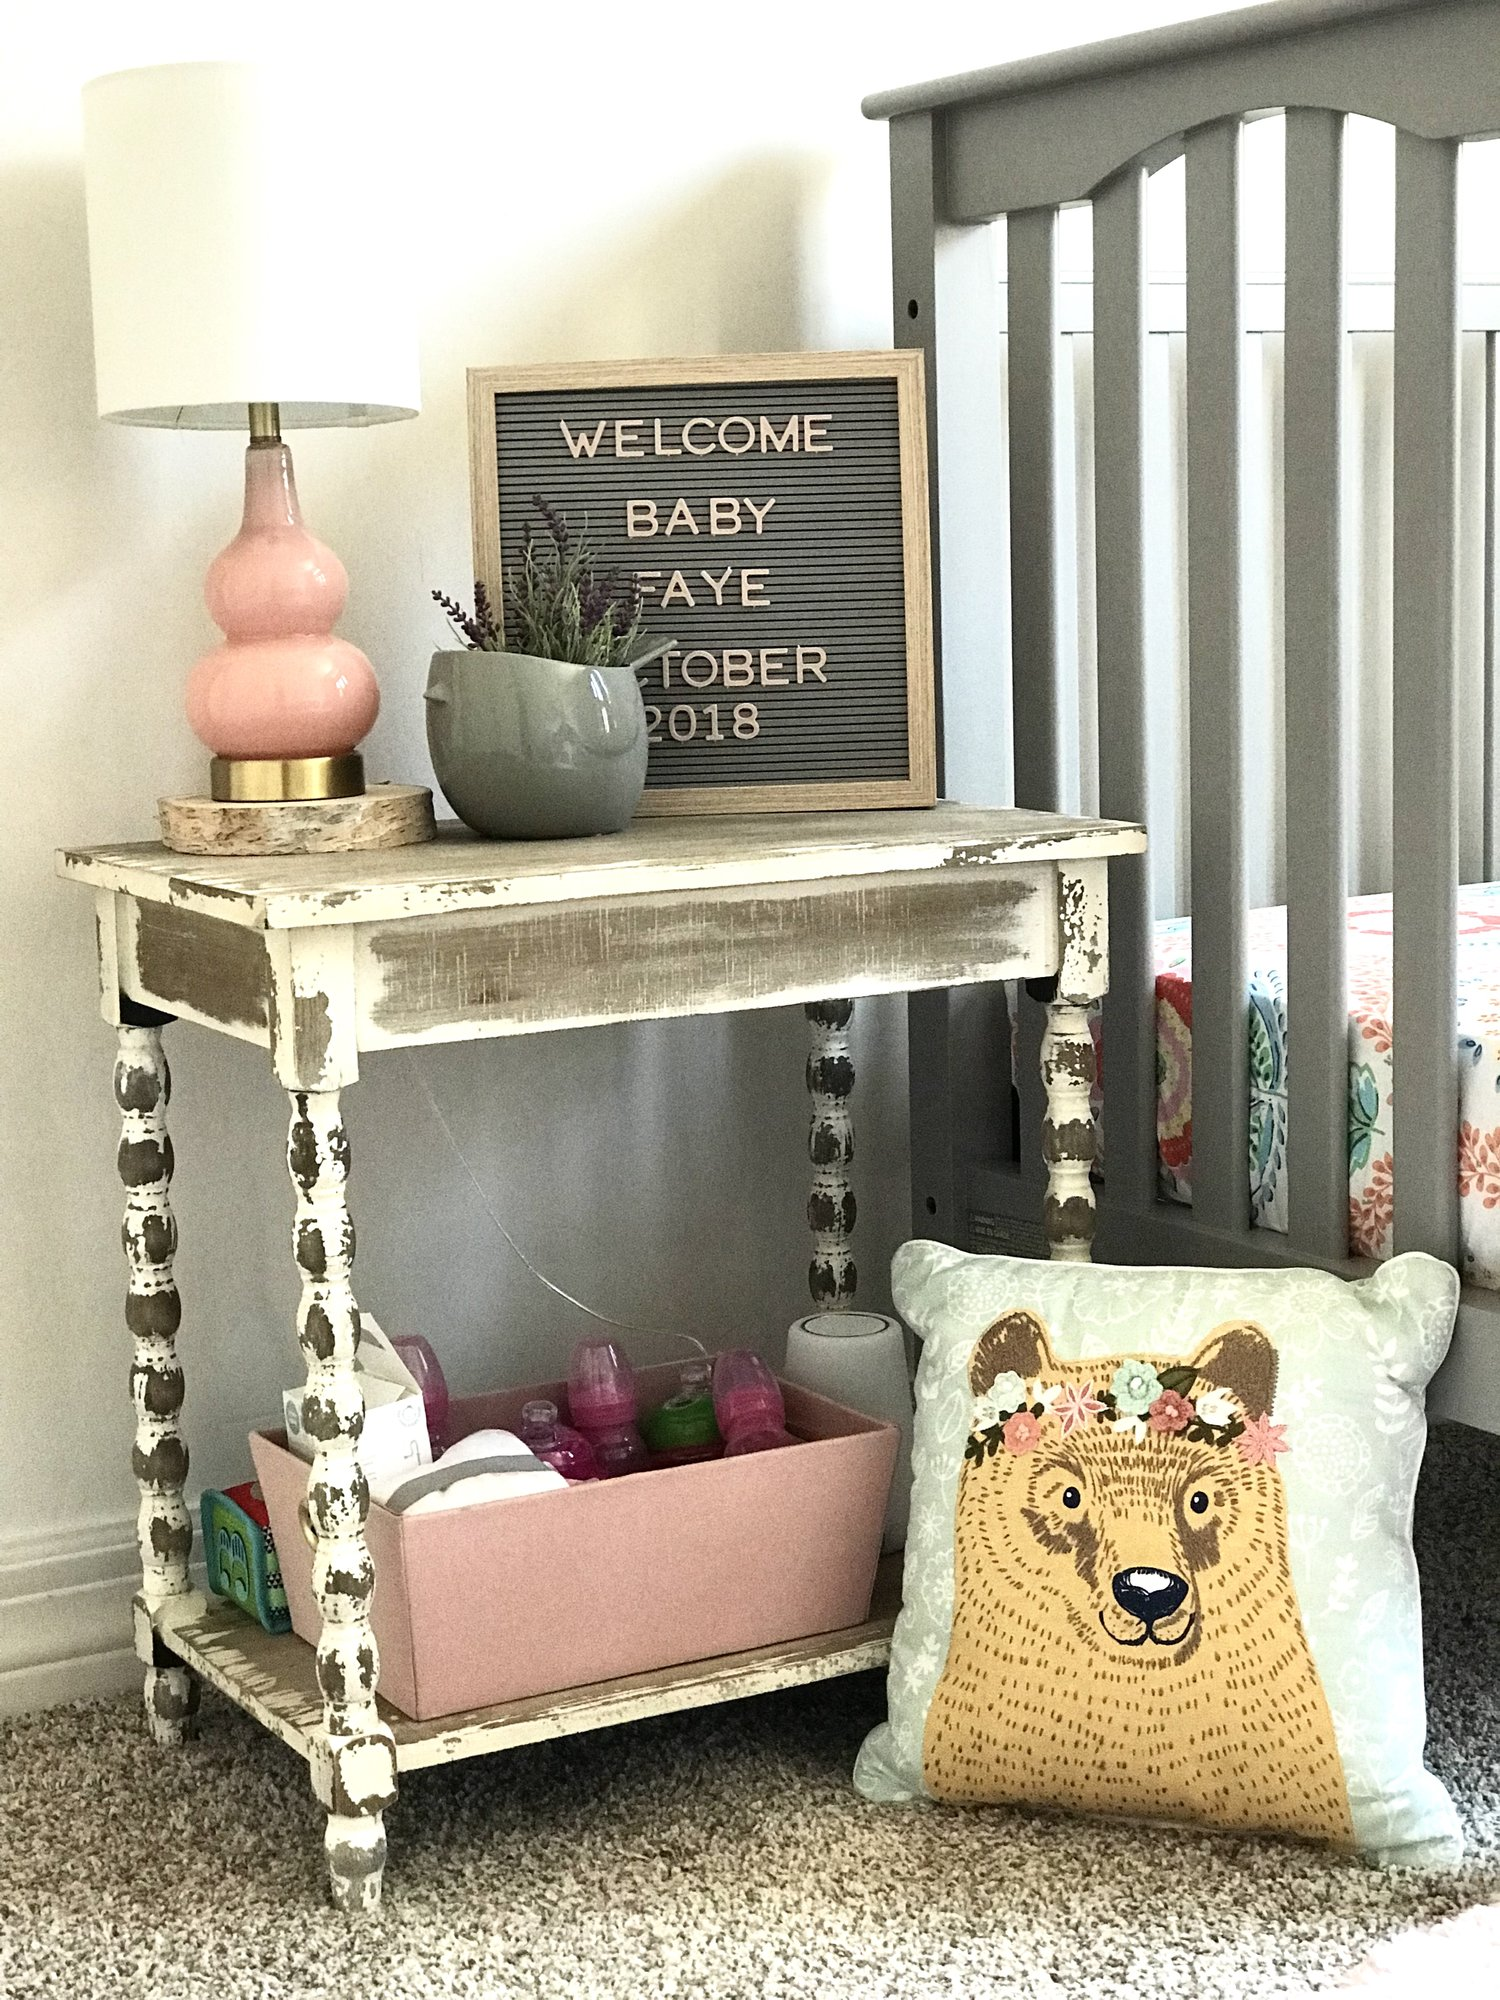 baby fresh coat img hobby lobby accent tables found this great rustic wood table you guessed paired with that adorable pillowfort bear pillow target marquee kirkland wrought iron